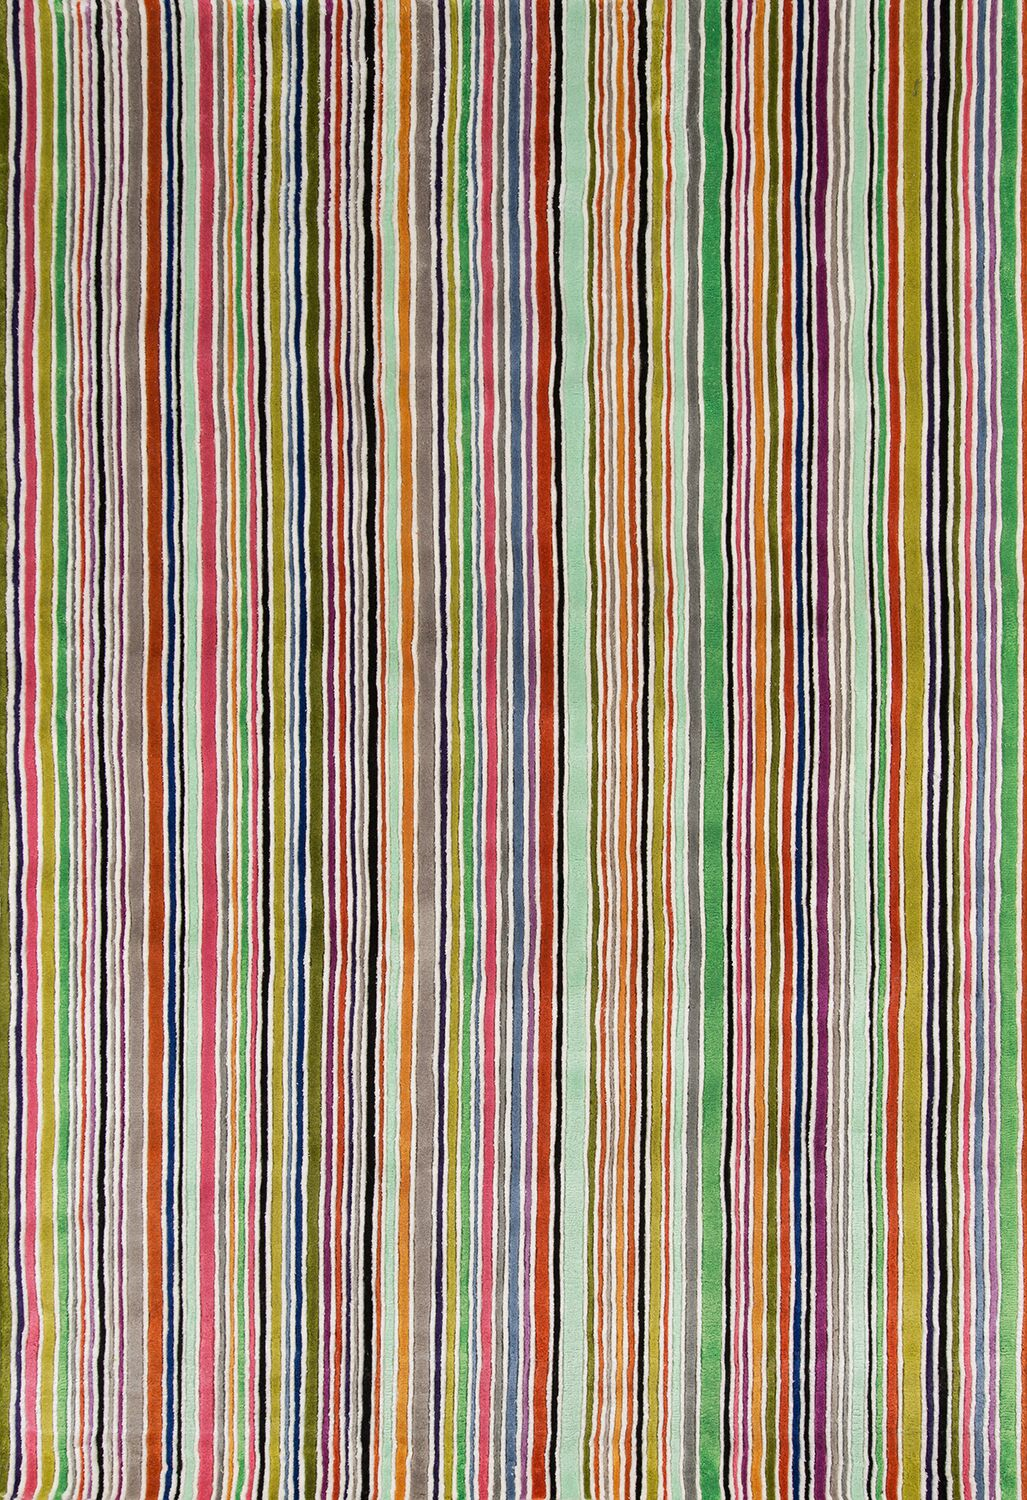 Despina Hand-Tufted Striped Area Rug Rug Size: Rectangle 5'3